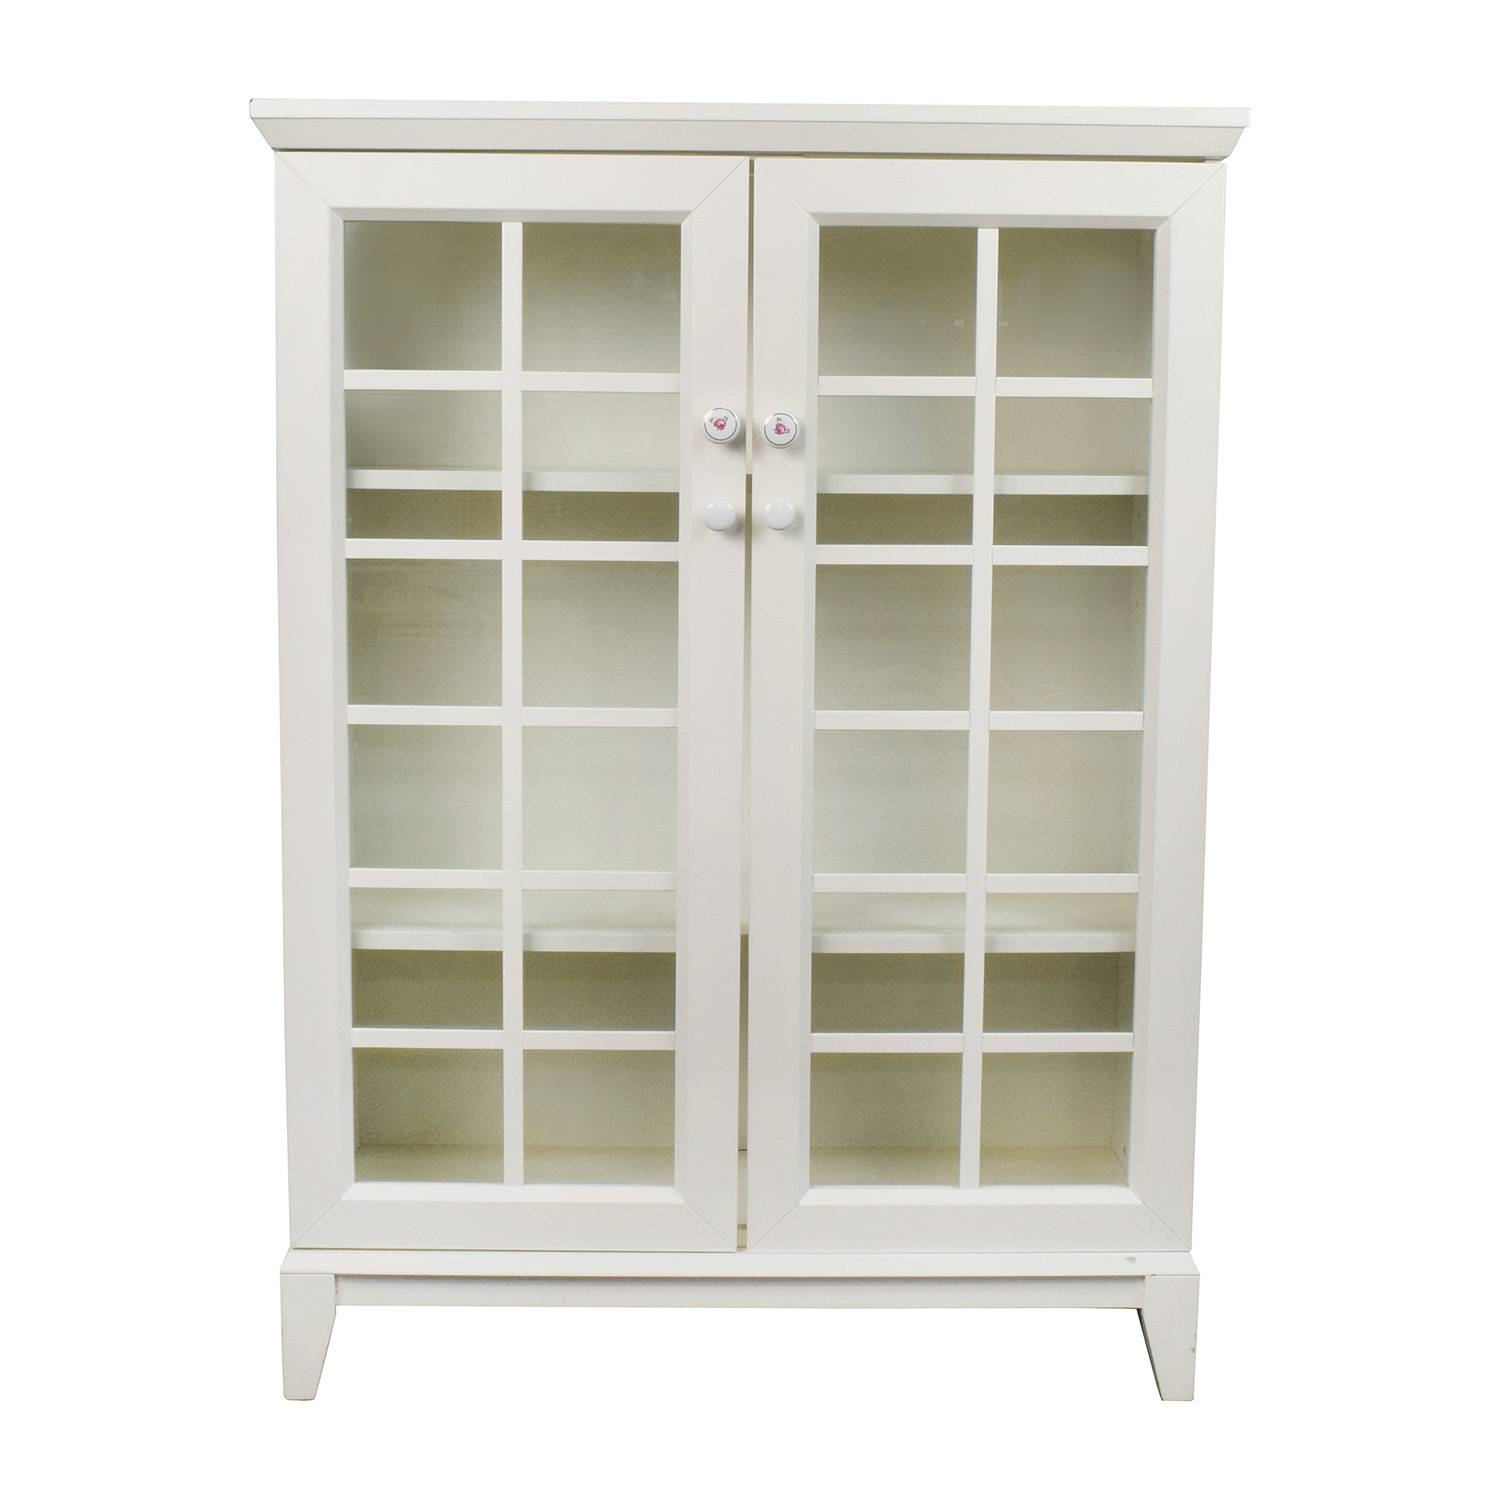 48% Off - Crate And Barrel Crate And Barrel White China Cabinet with regard to Crate and Barrel Sideboards (Image 1 of 15)